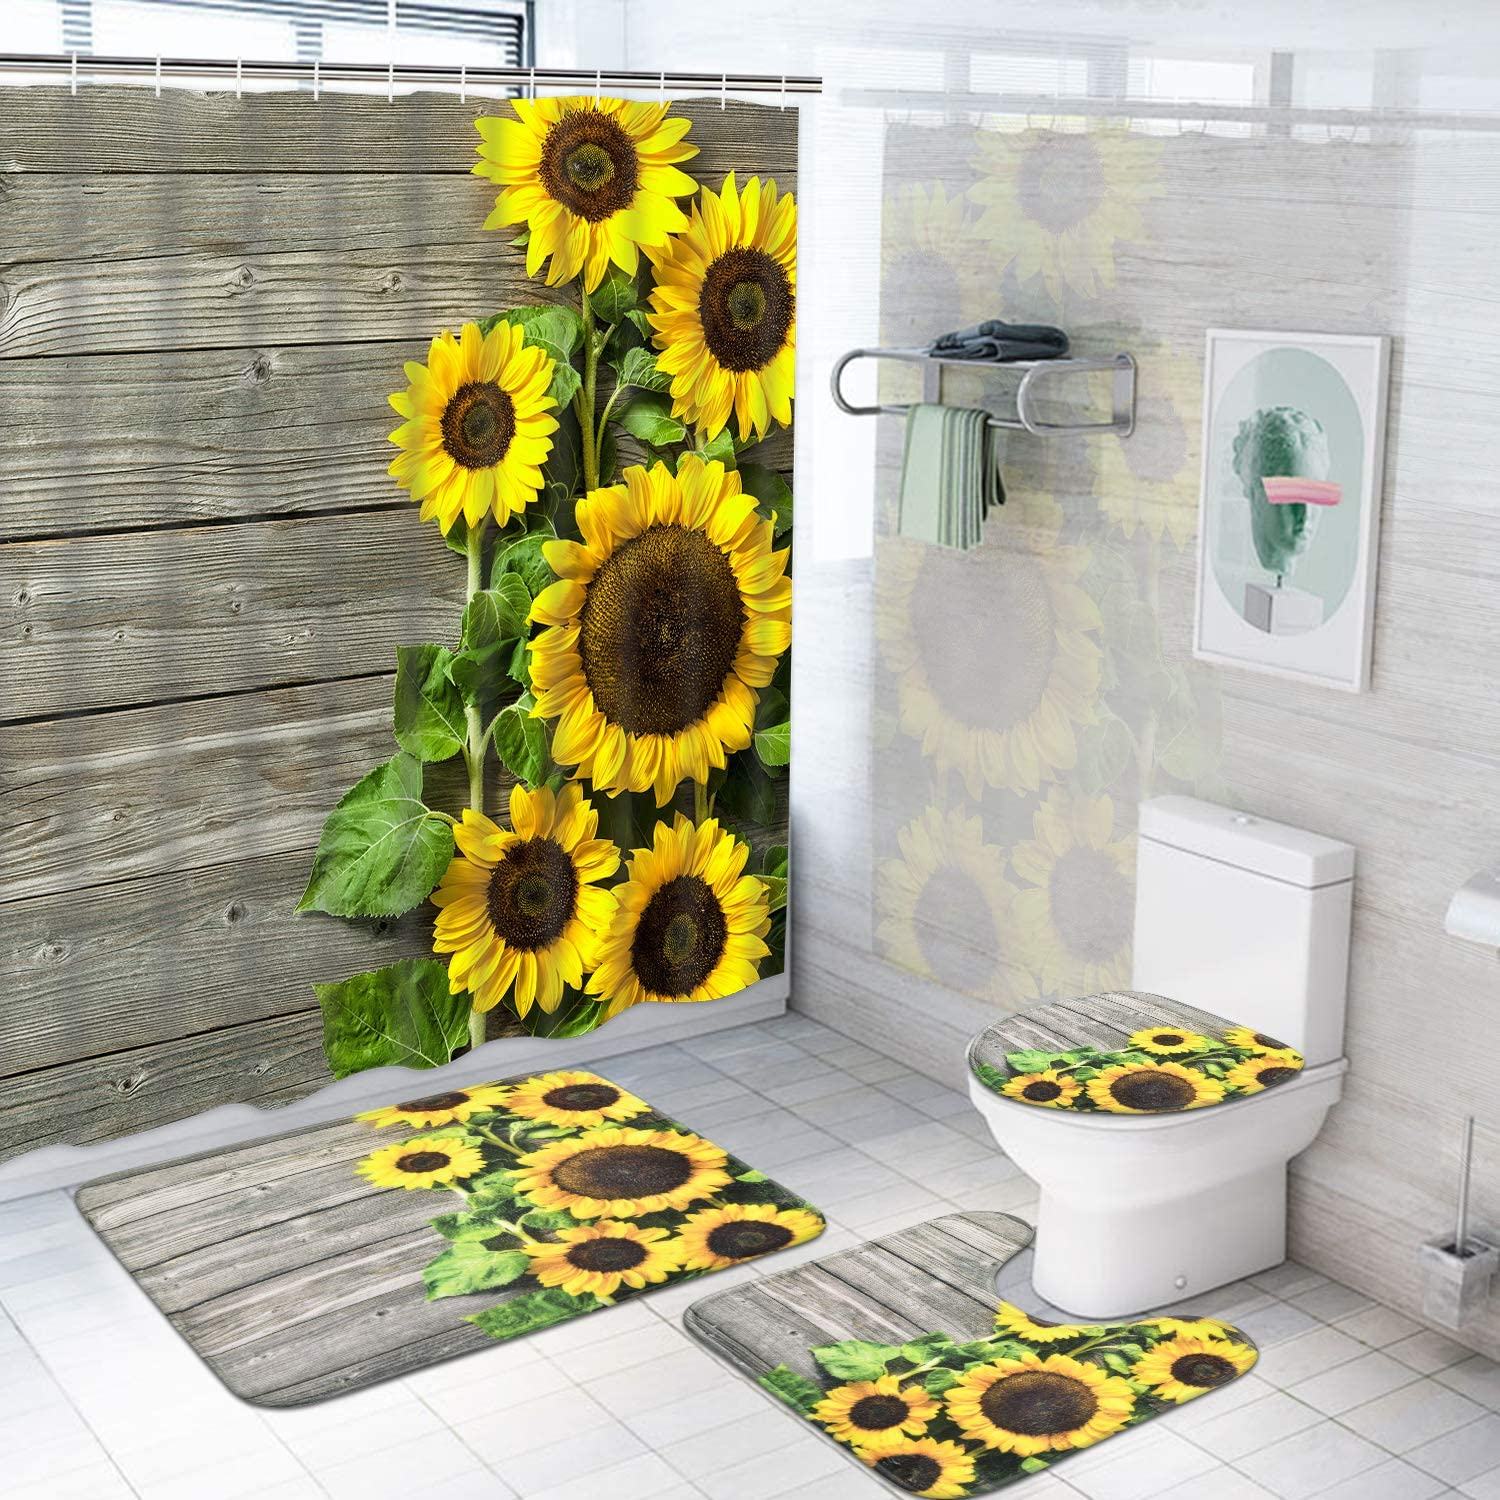 Pknoclan 4 Pcs Sunflower Shower Curtain Sets with Non-Slip Rugs, Toilet Lid Cover and Bath Mat, Rustic Wooden Plank Shower Curtain with 12 Hooks, Floral Waterproof Fabric Shower Curtain for Bathroom